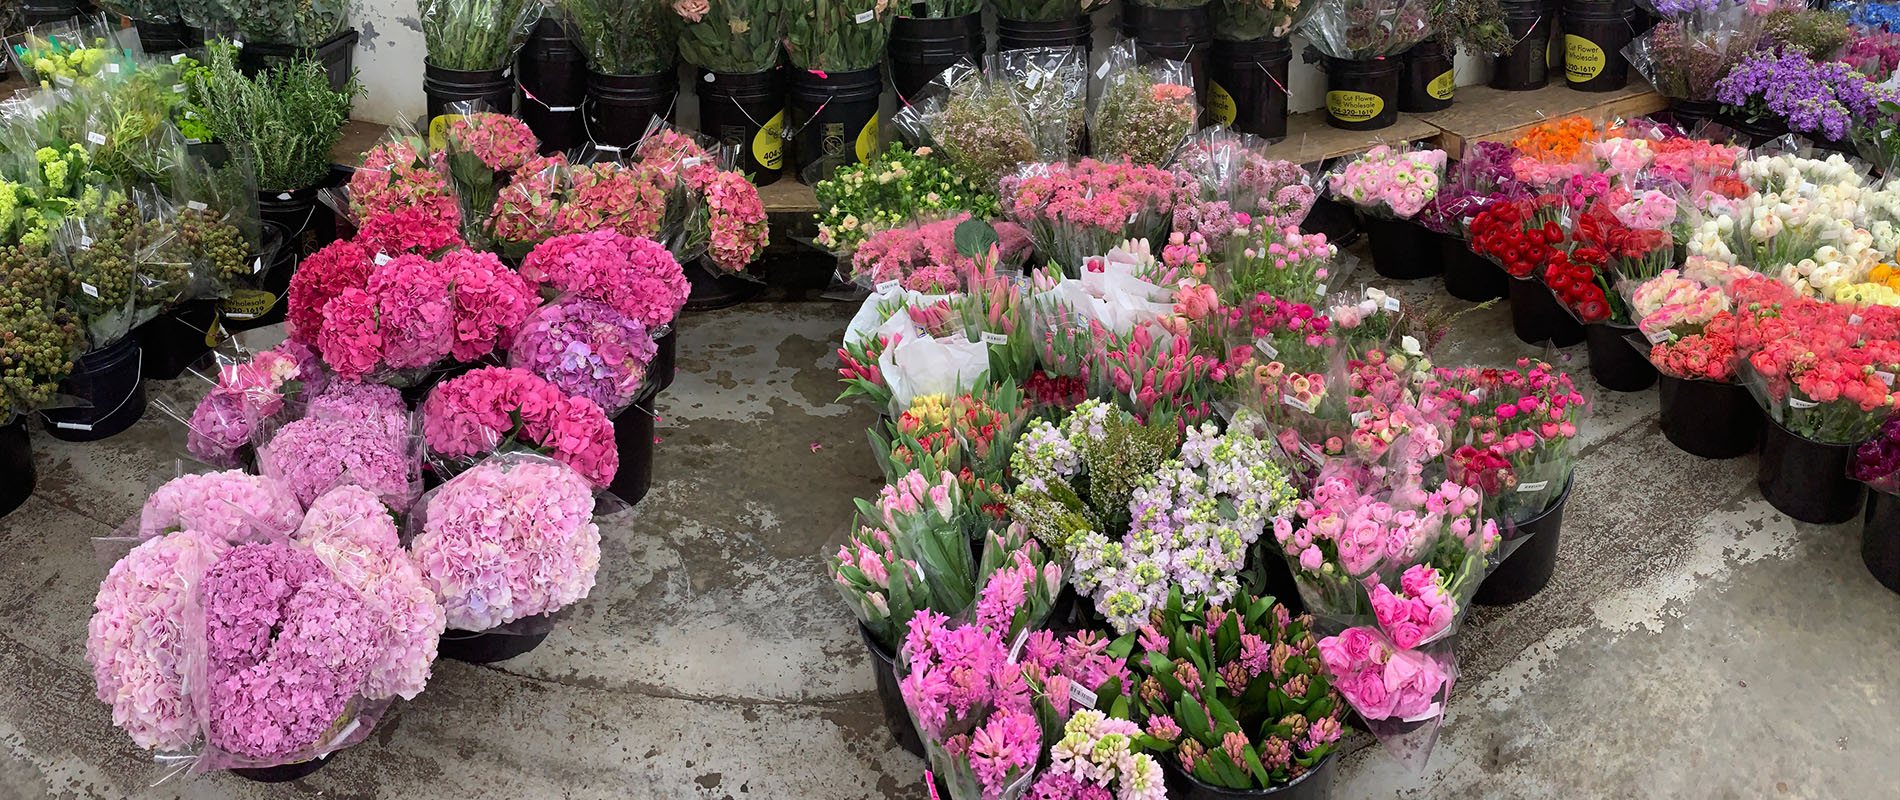 Welcome to the WOW Warehouse! About Cut Flower Wholesale